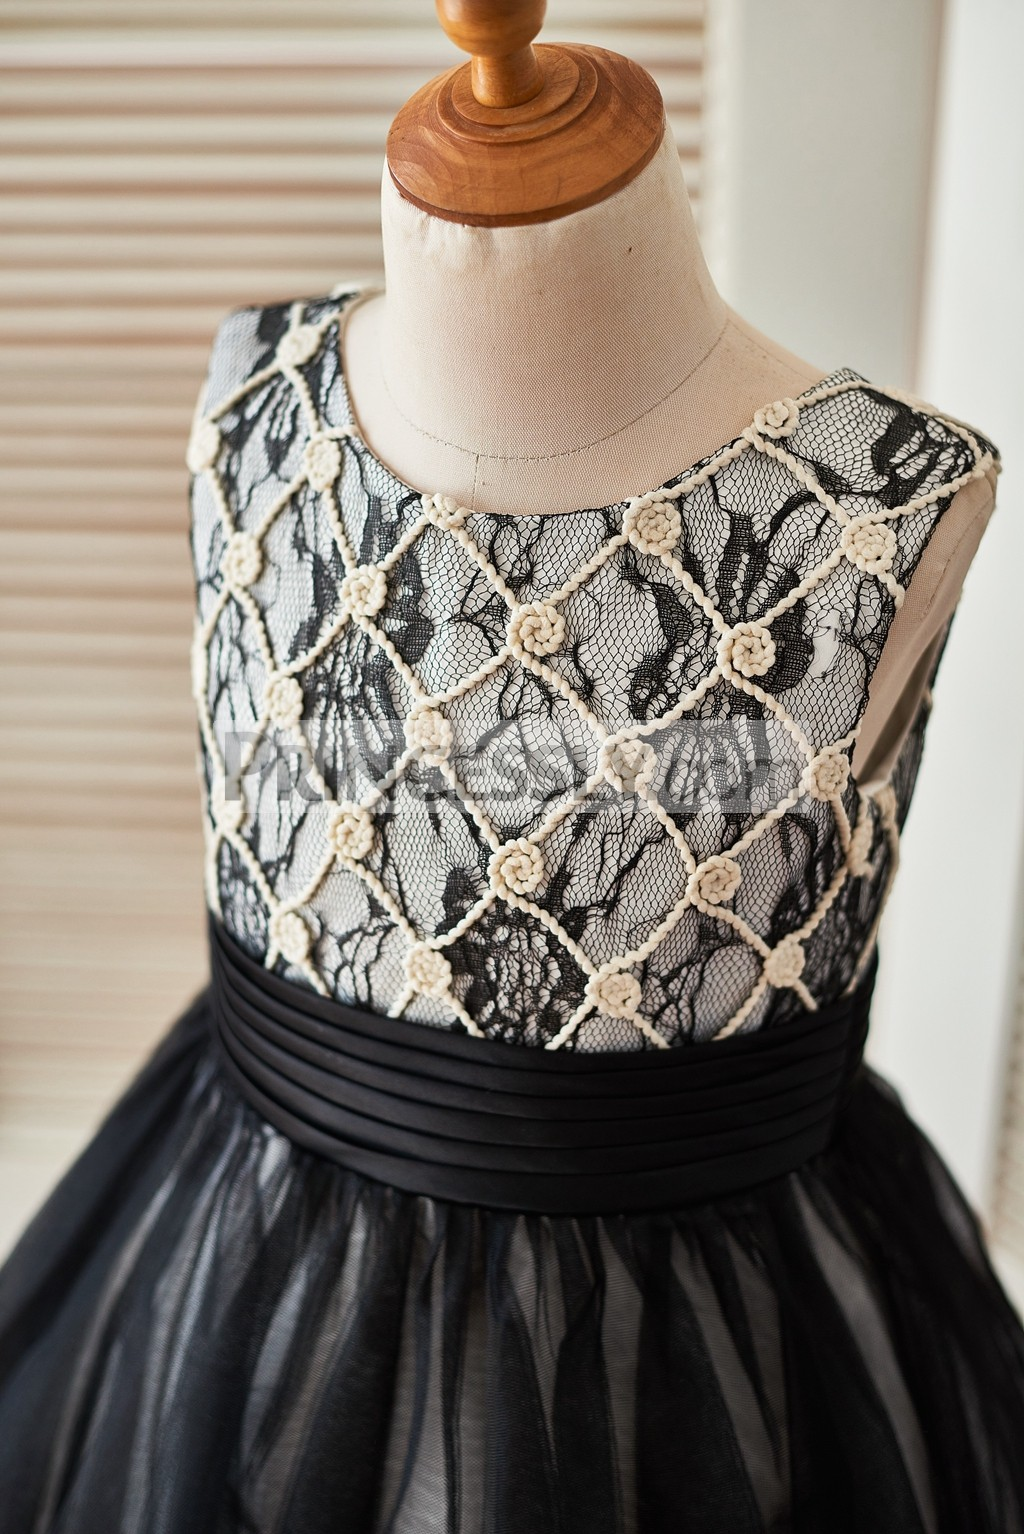 feb1418f535 ... tulle skirt princess wedding baby girl dress. Champagne rope grid over black  lace over delicate bodice